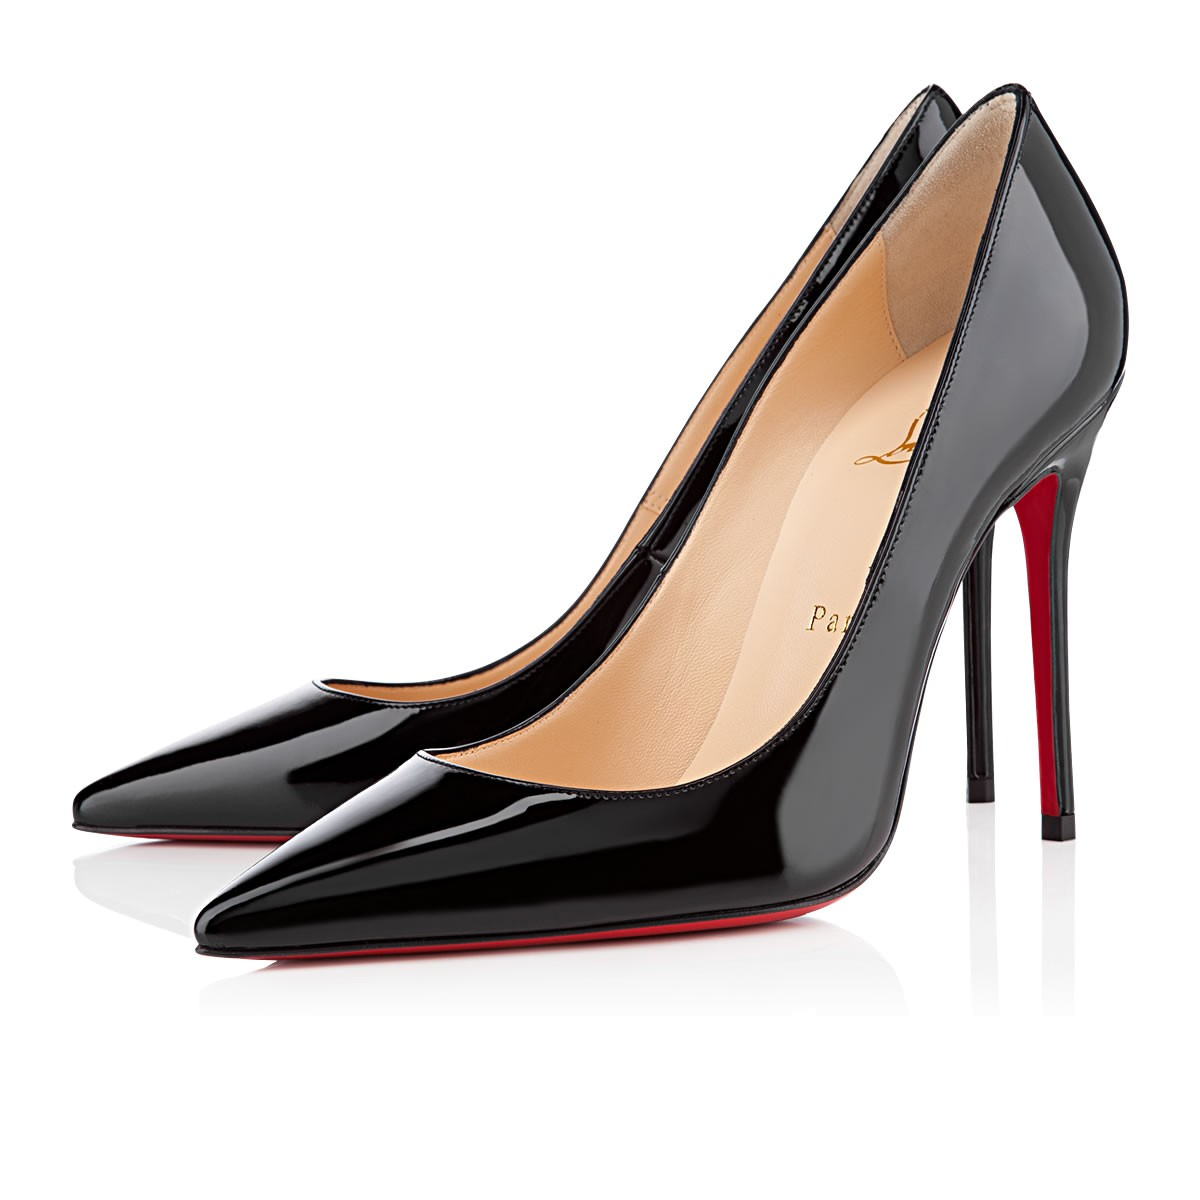 125f6250b0 Kate 100 Black Patent Leather - Women Shoes - Christian Louboutin